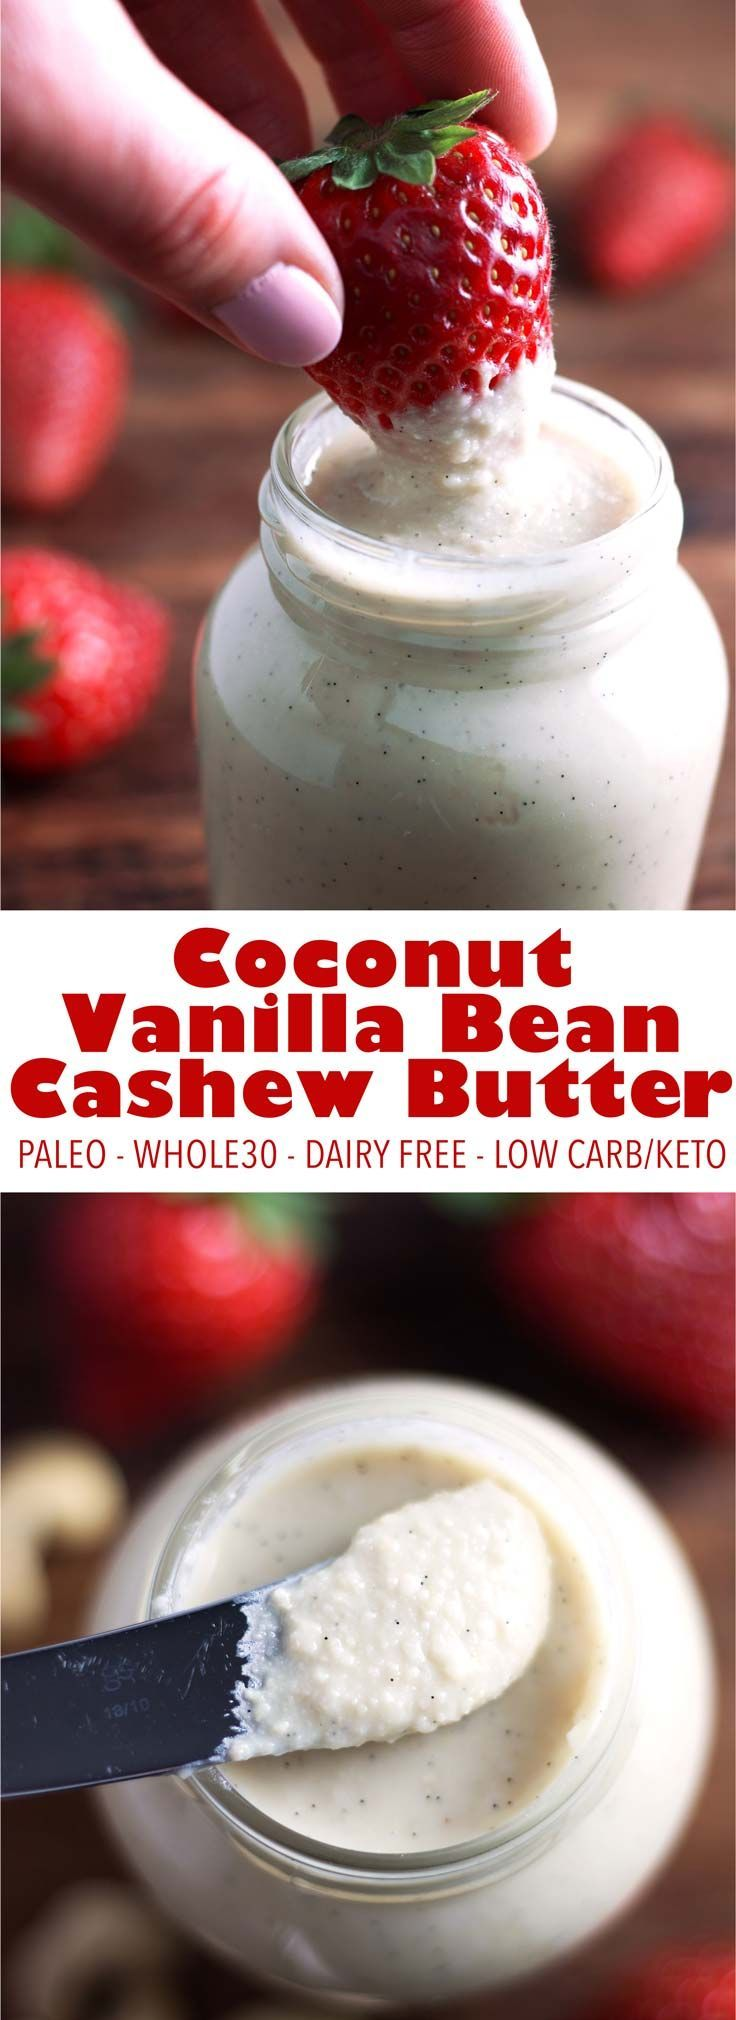 Best nut butter EVER. This easy coconut cashew butter recipe take just 12 mins and 5 ingredients. It's paleo, vegan, low carb, keto, and Whole30!